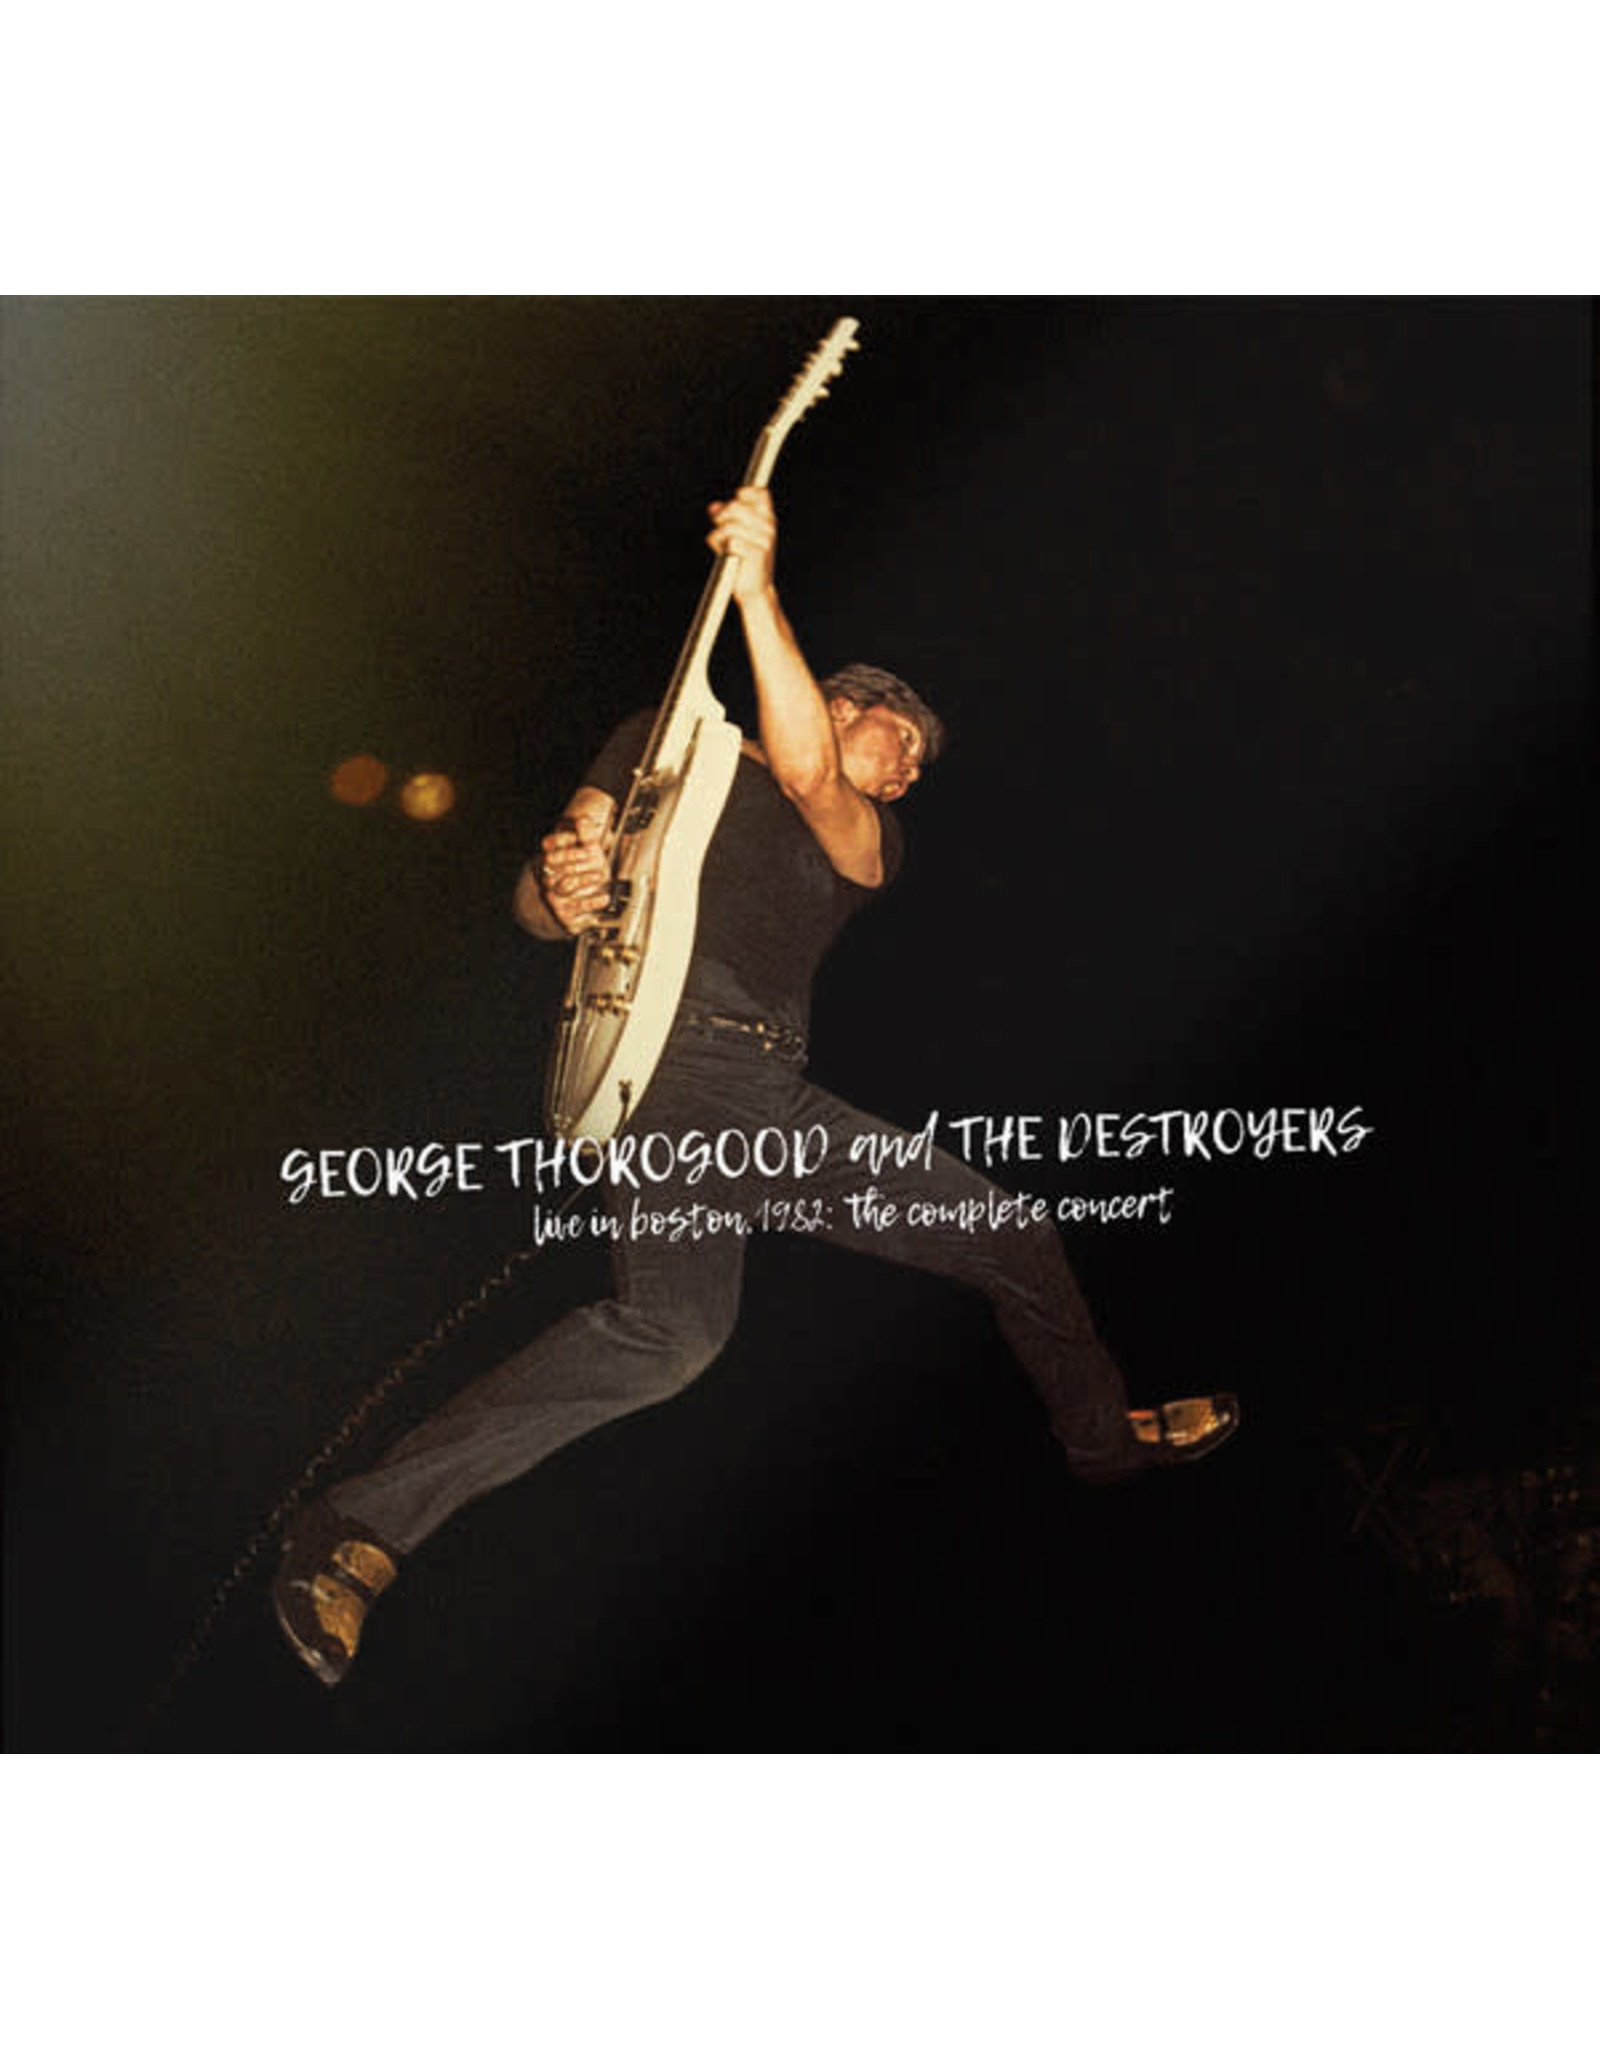 Thorogood, George & The Destroyers - Live in Boston 1982: The Complete Concert 3LP